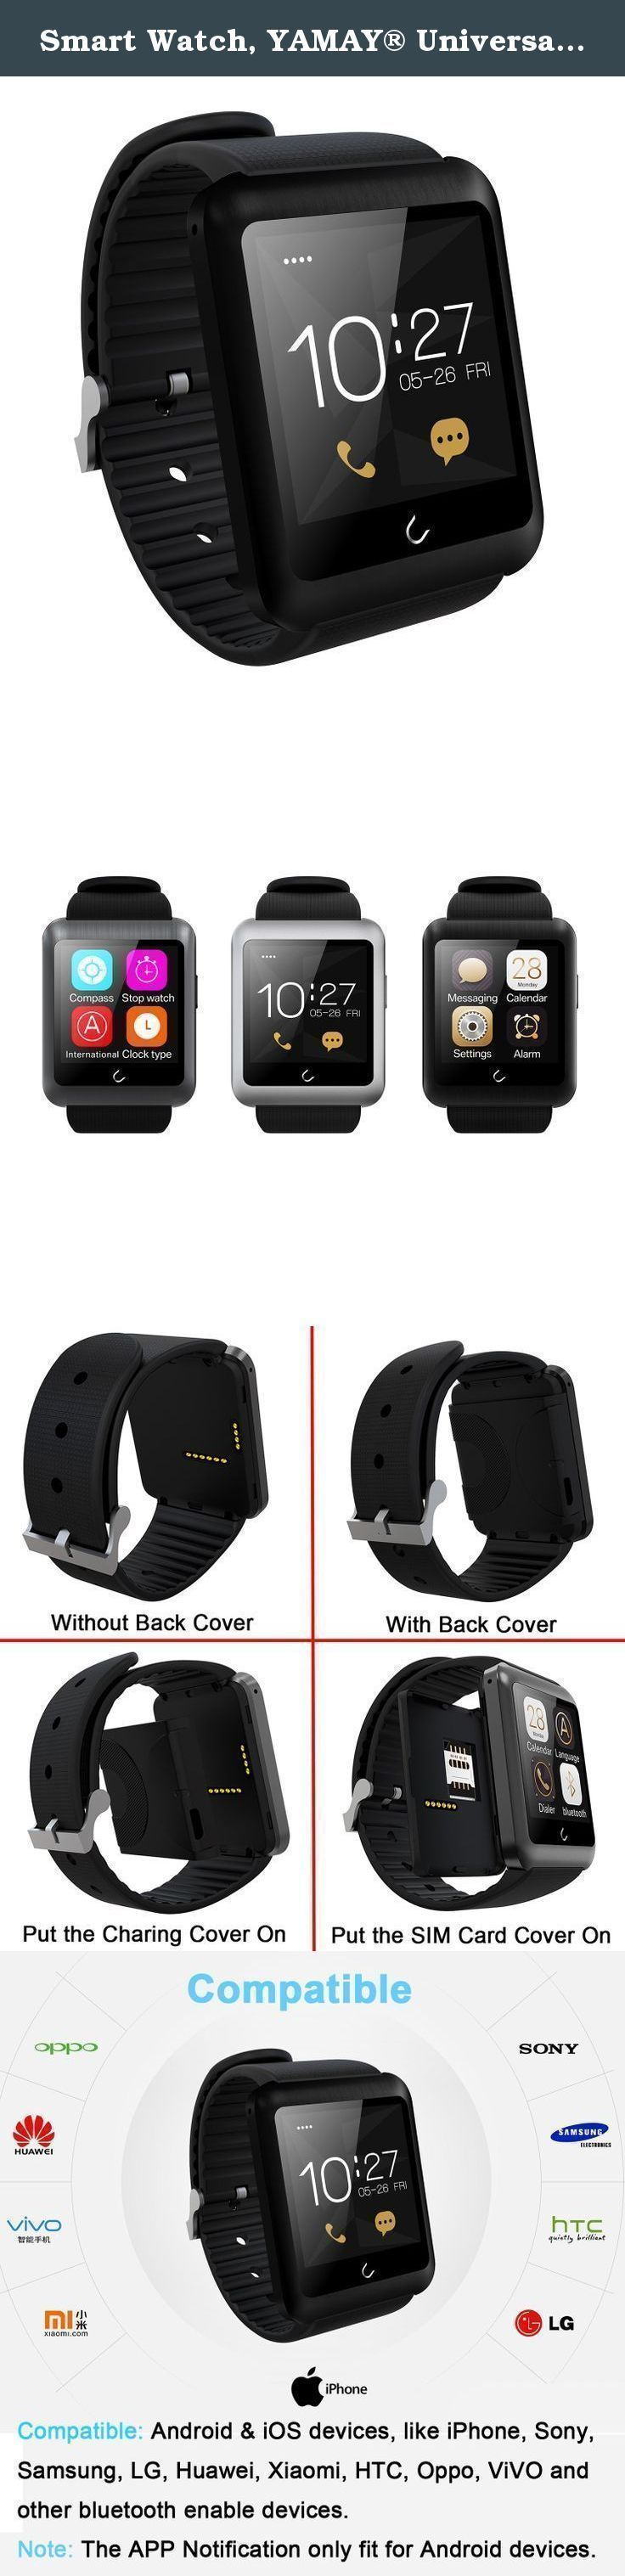 Smart Watch, YAMAY® Universal Bluetooth Smartwatch Phone with Sim Card Slot Unlocked Fitness Tracker Pedometer Texting for iPhone Android Samsung LG Phones for Running Sport Outdoor Women Men Girls. Note: The APP Nitification just fit for Android, not iOS. Muilt Function: Support SIM Card GSM Function, Intelligent Call, Phone Call, Pedometer, Compass, Sleeping Monitor, Sedentary Remind, Stopwatch, Alarm, SMS Alert, Music Player, Remote Camera. APP Notification (Only Fit for Android…